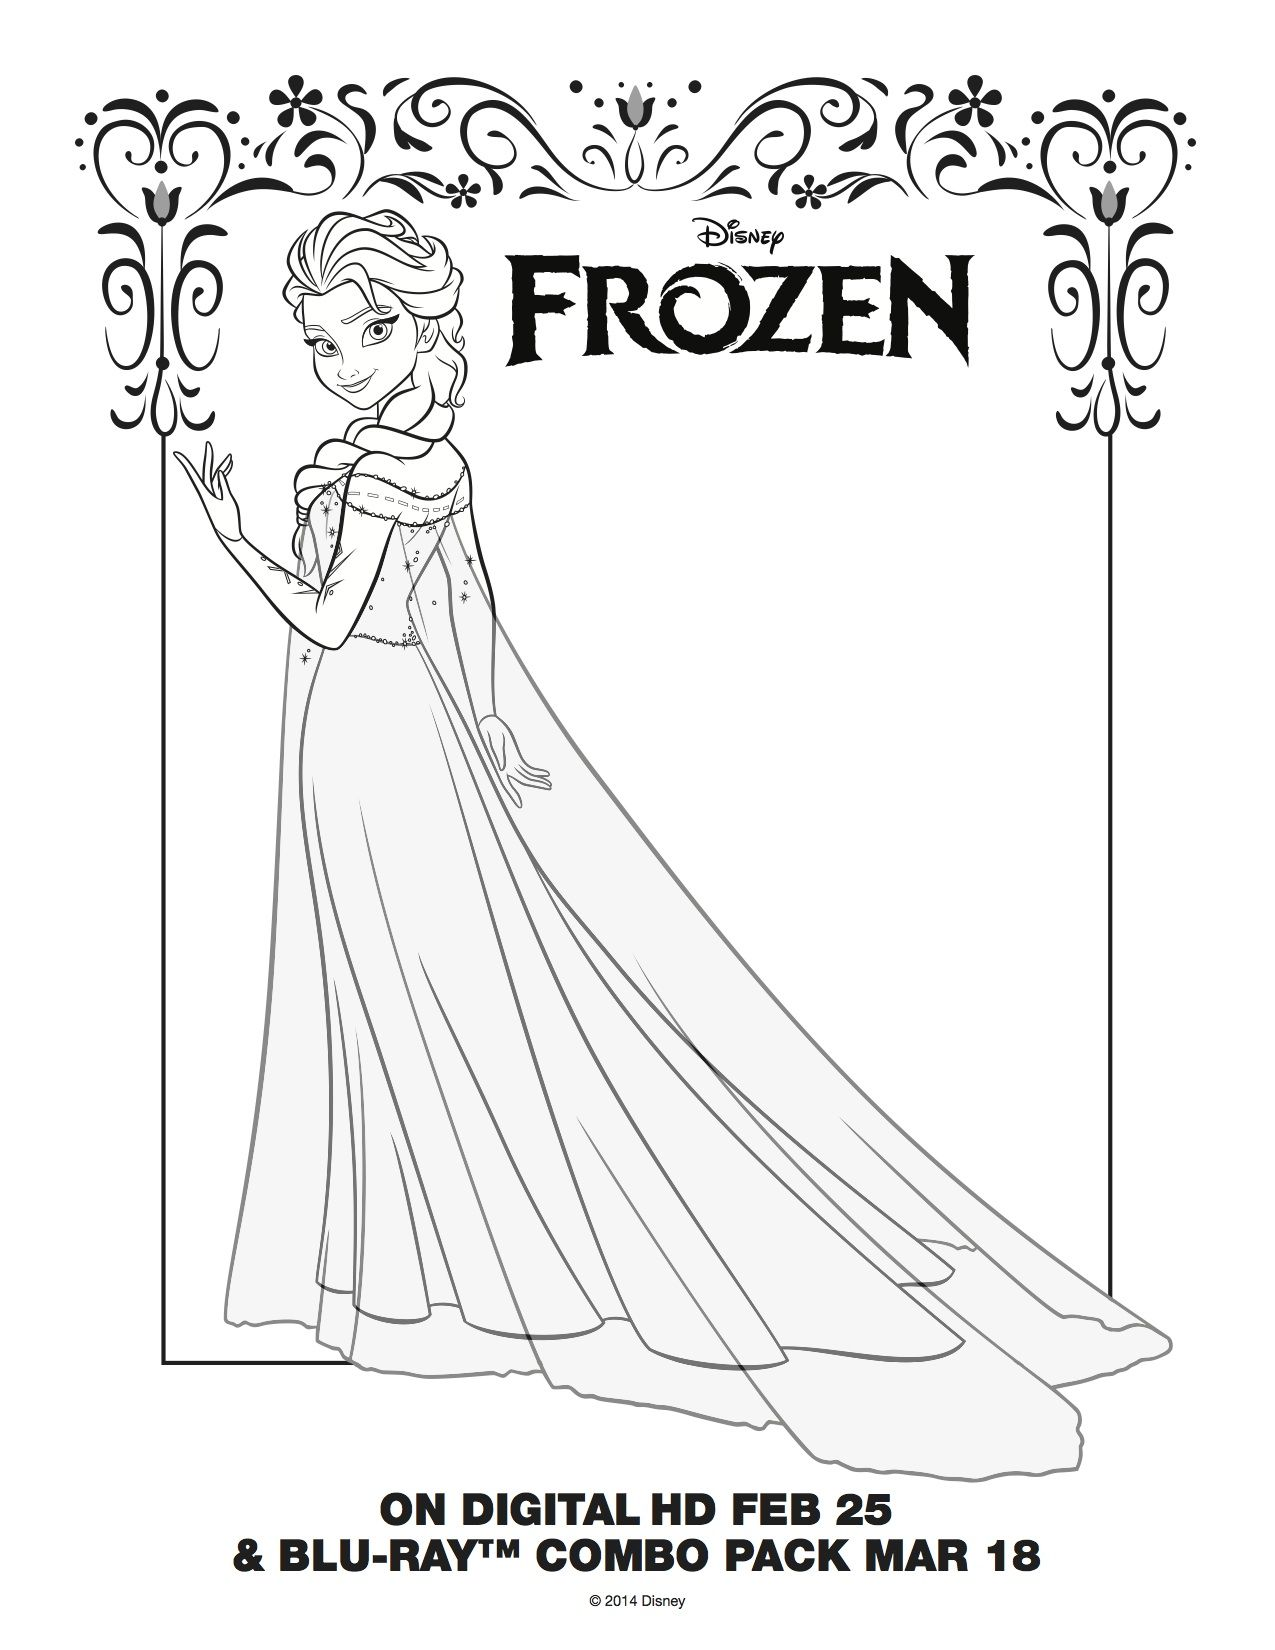 Coloring Pages Frozen - Frozen hd wallpaper and background photos of frozen elsa coloring page for fans of elsa and anna images